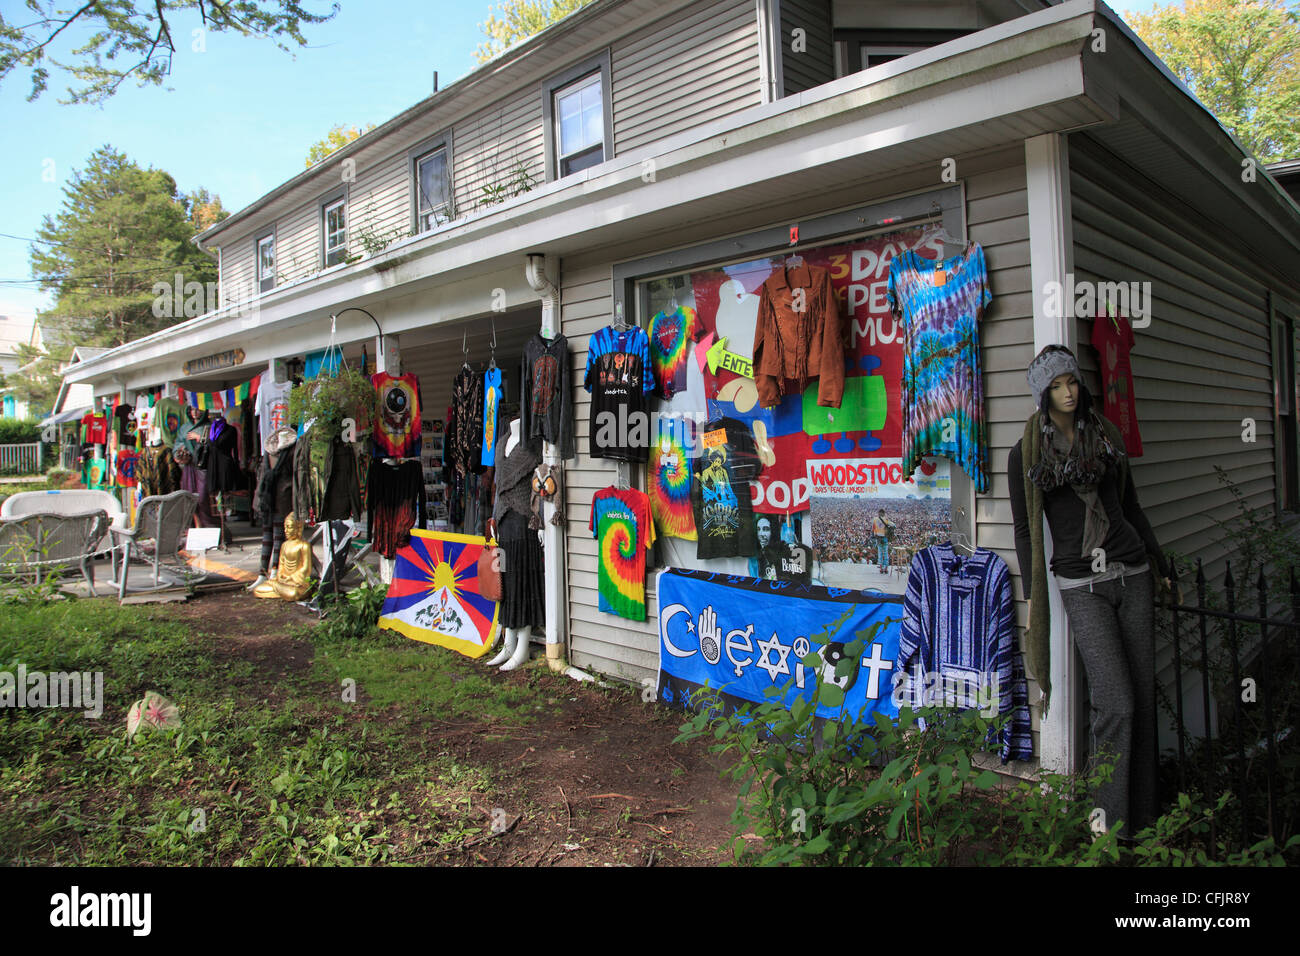 Shop selling hippie and Woodstock festival memorabilia, New York State, United States of America, North America - Stock Image